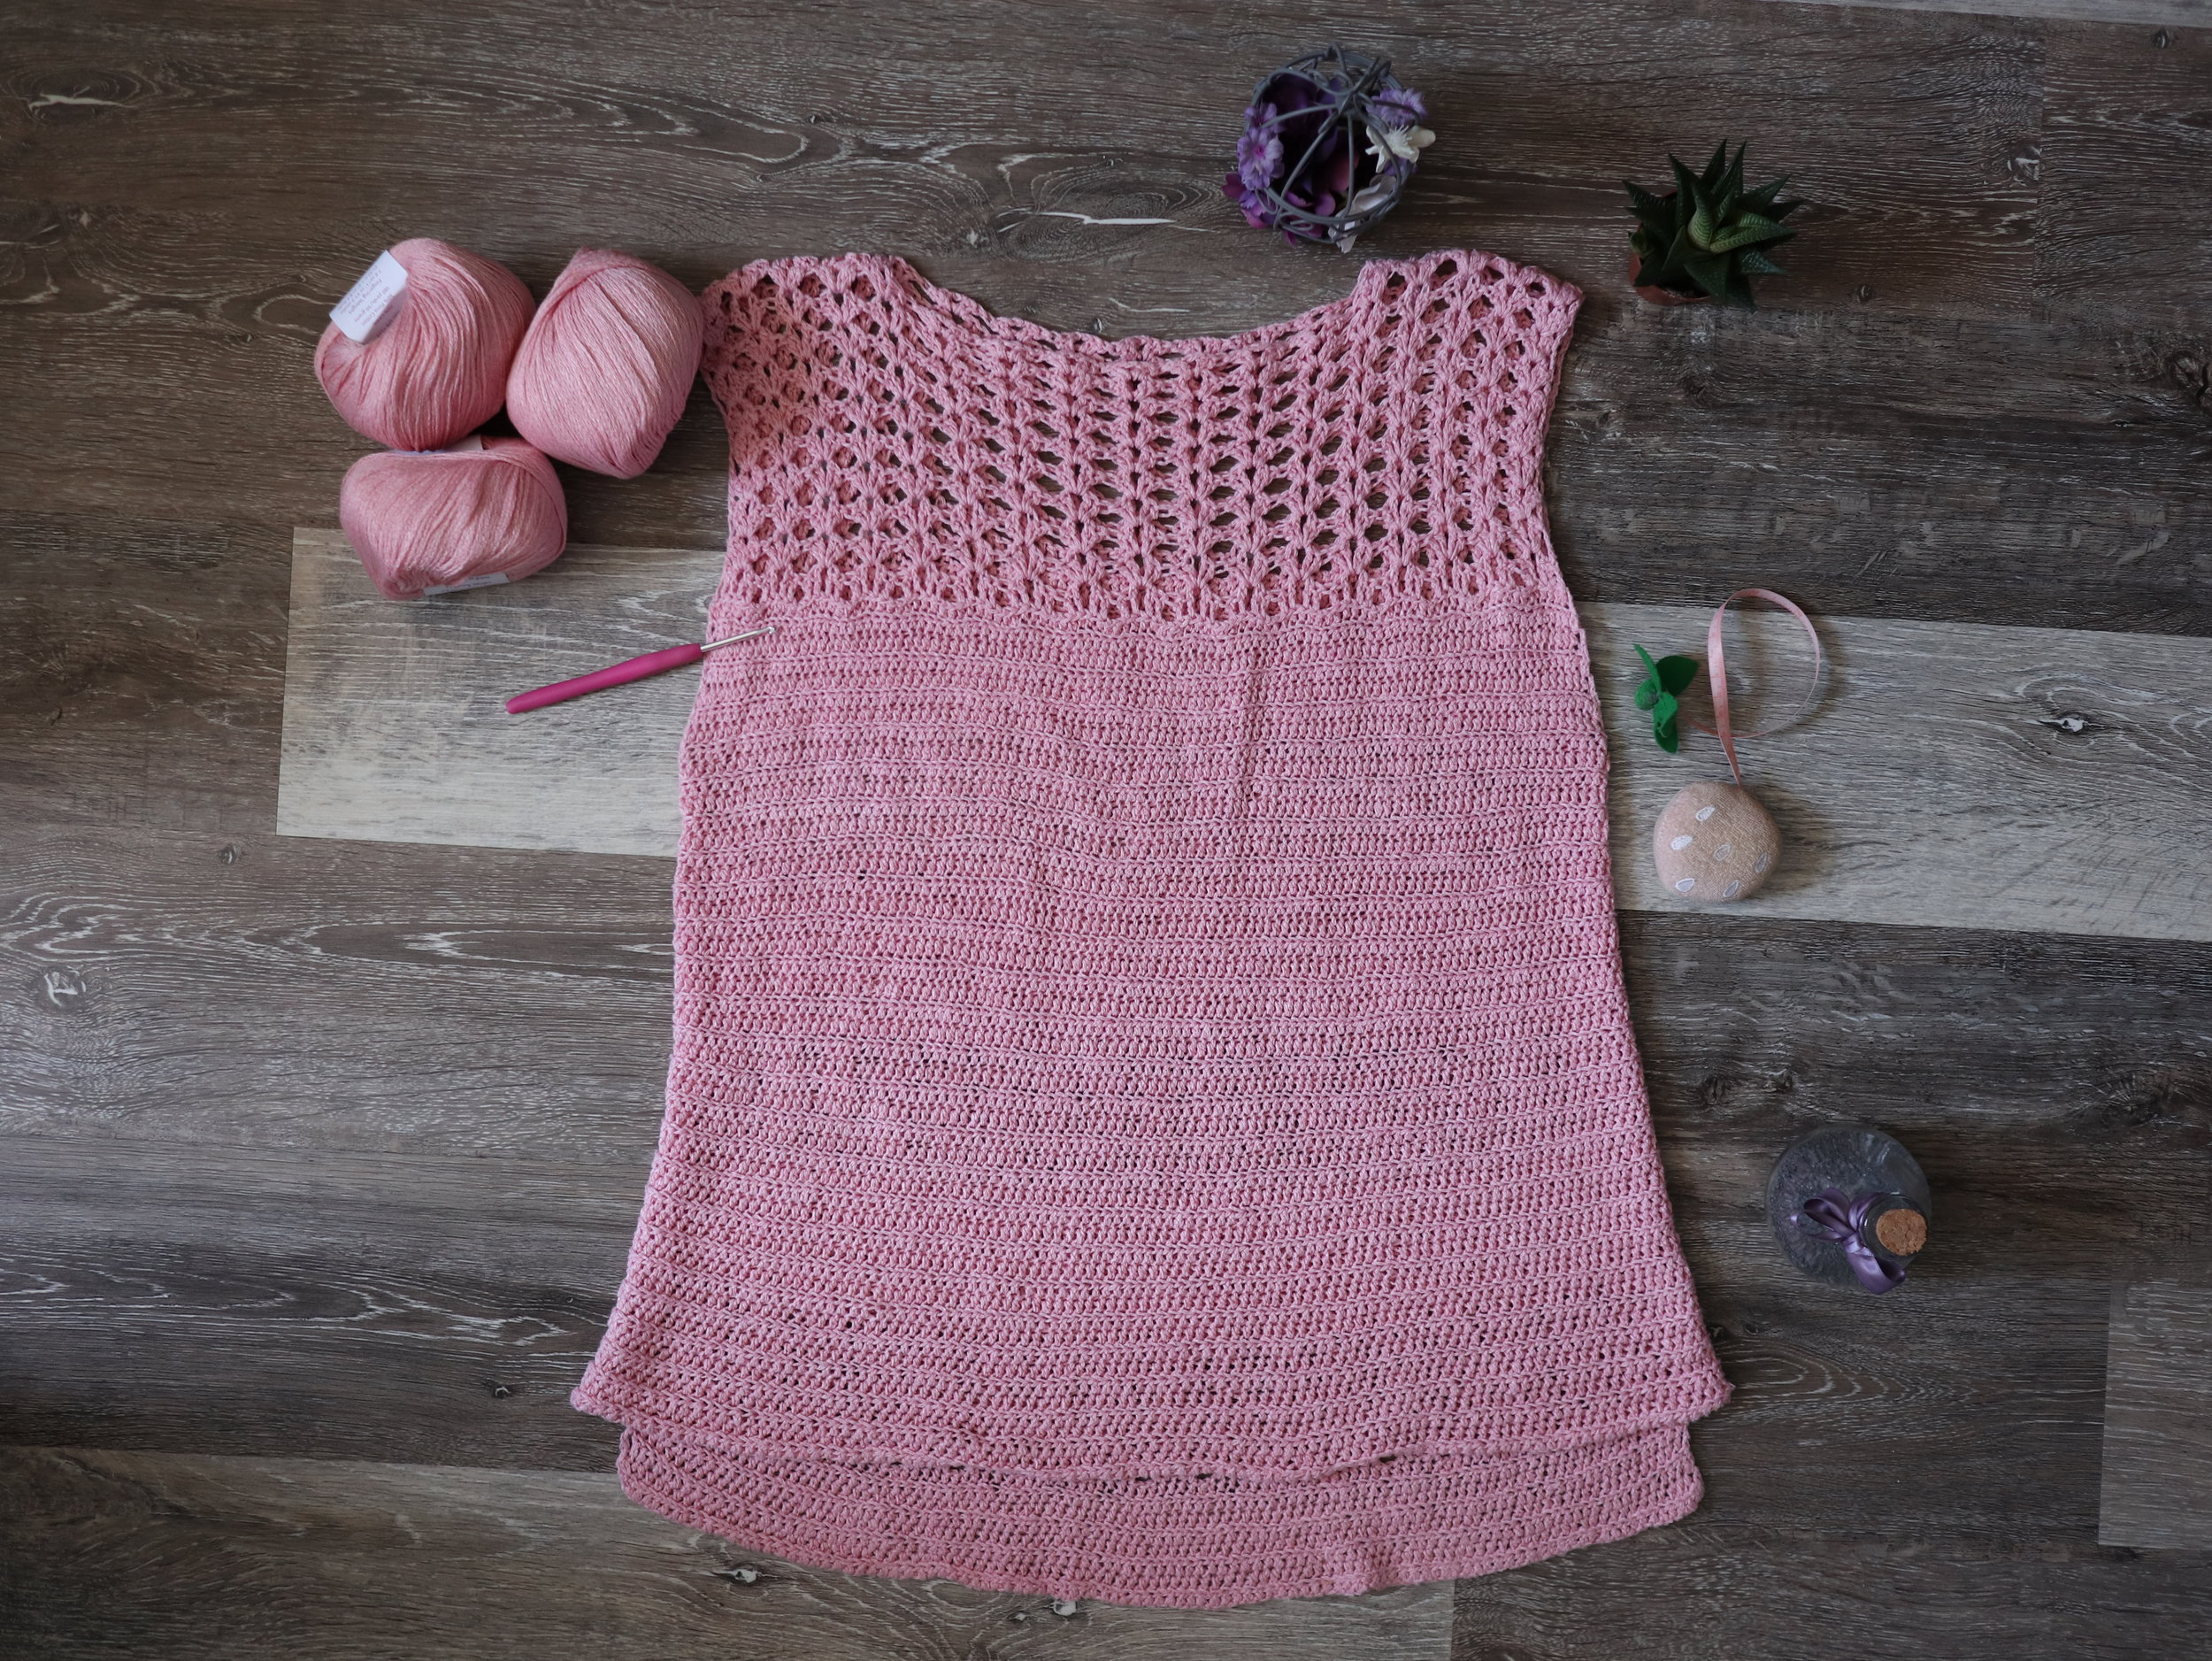 FREE PATTERN - The Options Top - Ravin Sekai Designs2